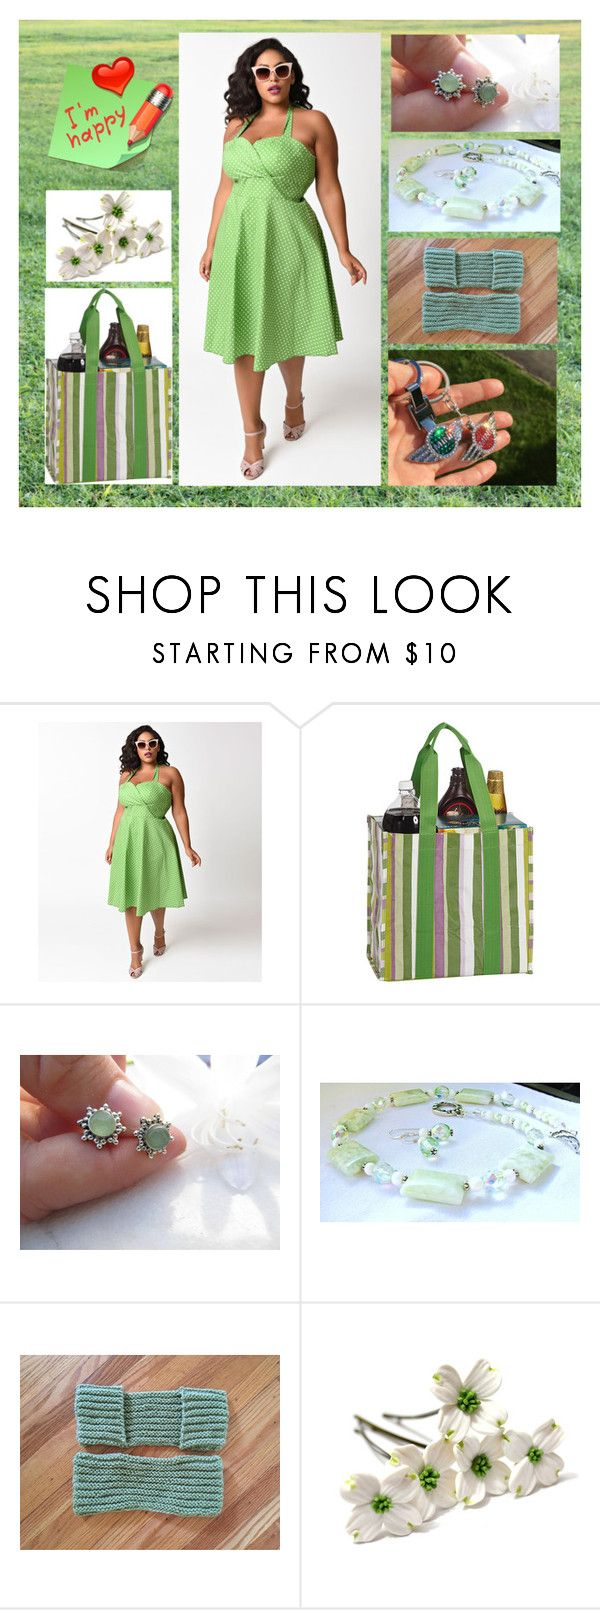 """""""Green happyness"""" by blingauto ❤ liked on Polyvore featuring Picnic Plus and plus size dresses"""